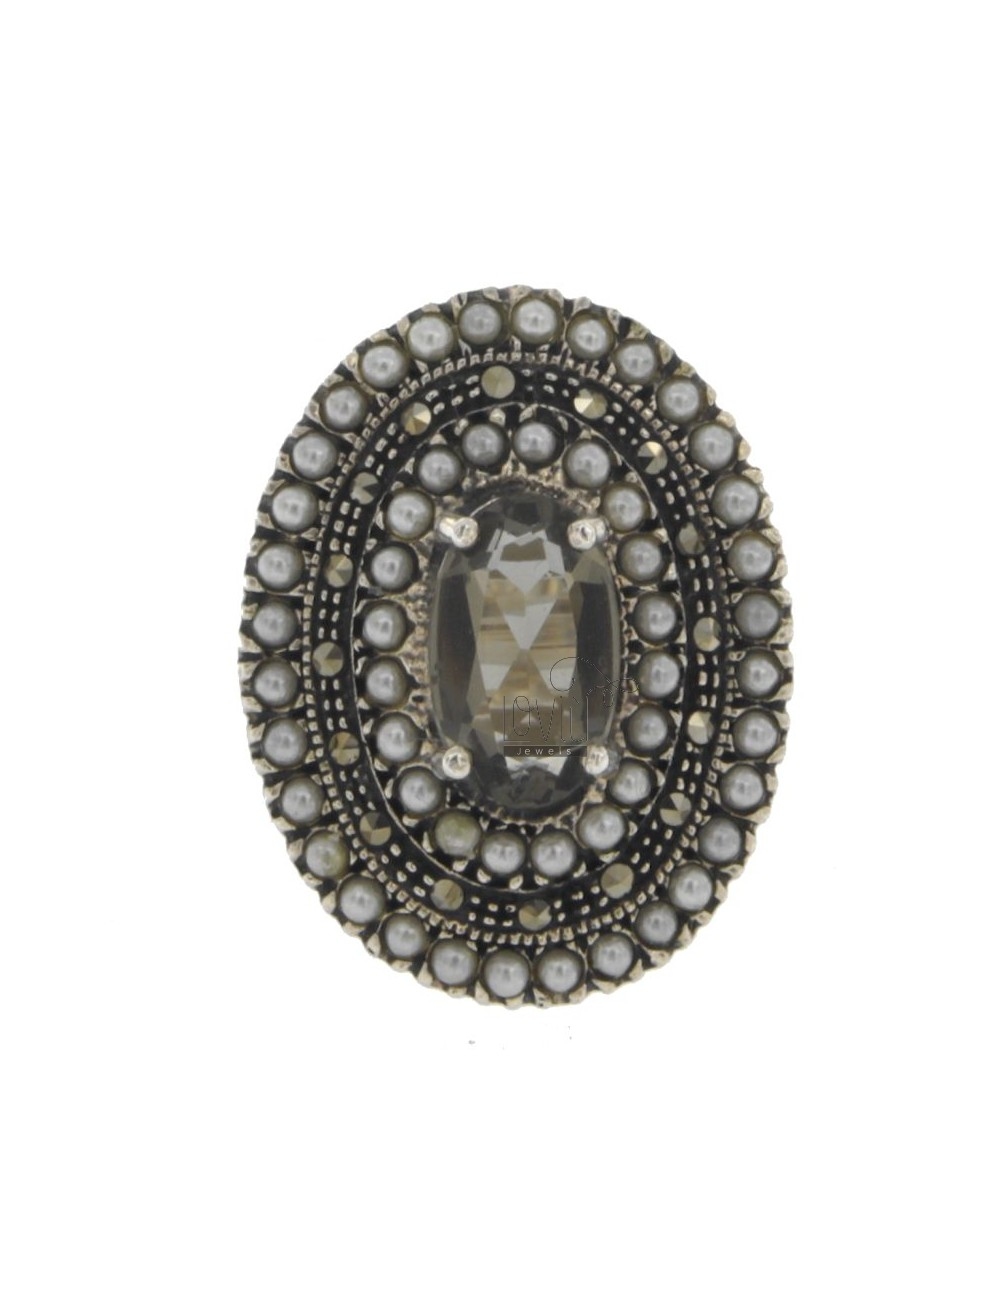 OVAL RING WITH MARCASITE, MICRO BEADS AND SMOKE CITRINE &39IN AG BRUNITO TIT 925 ‰ SIZE 14